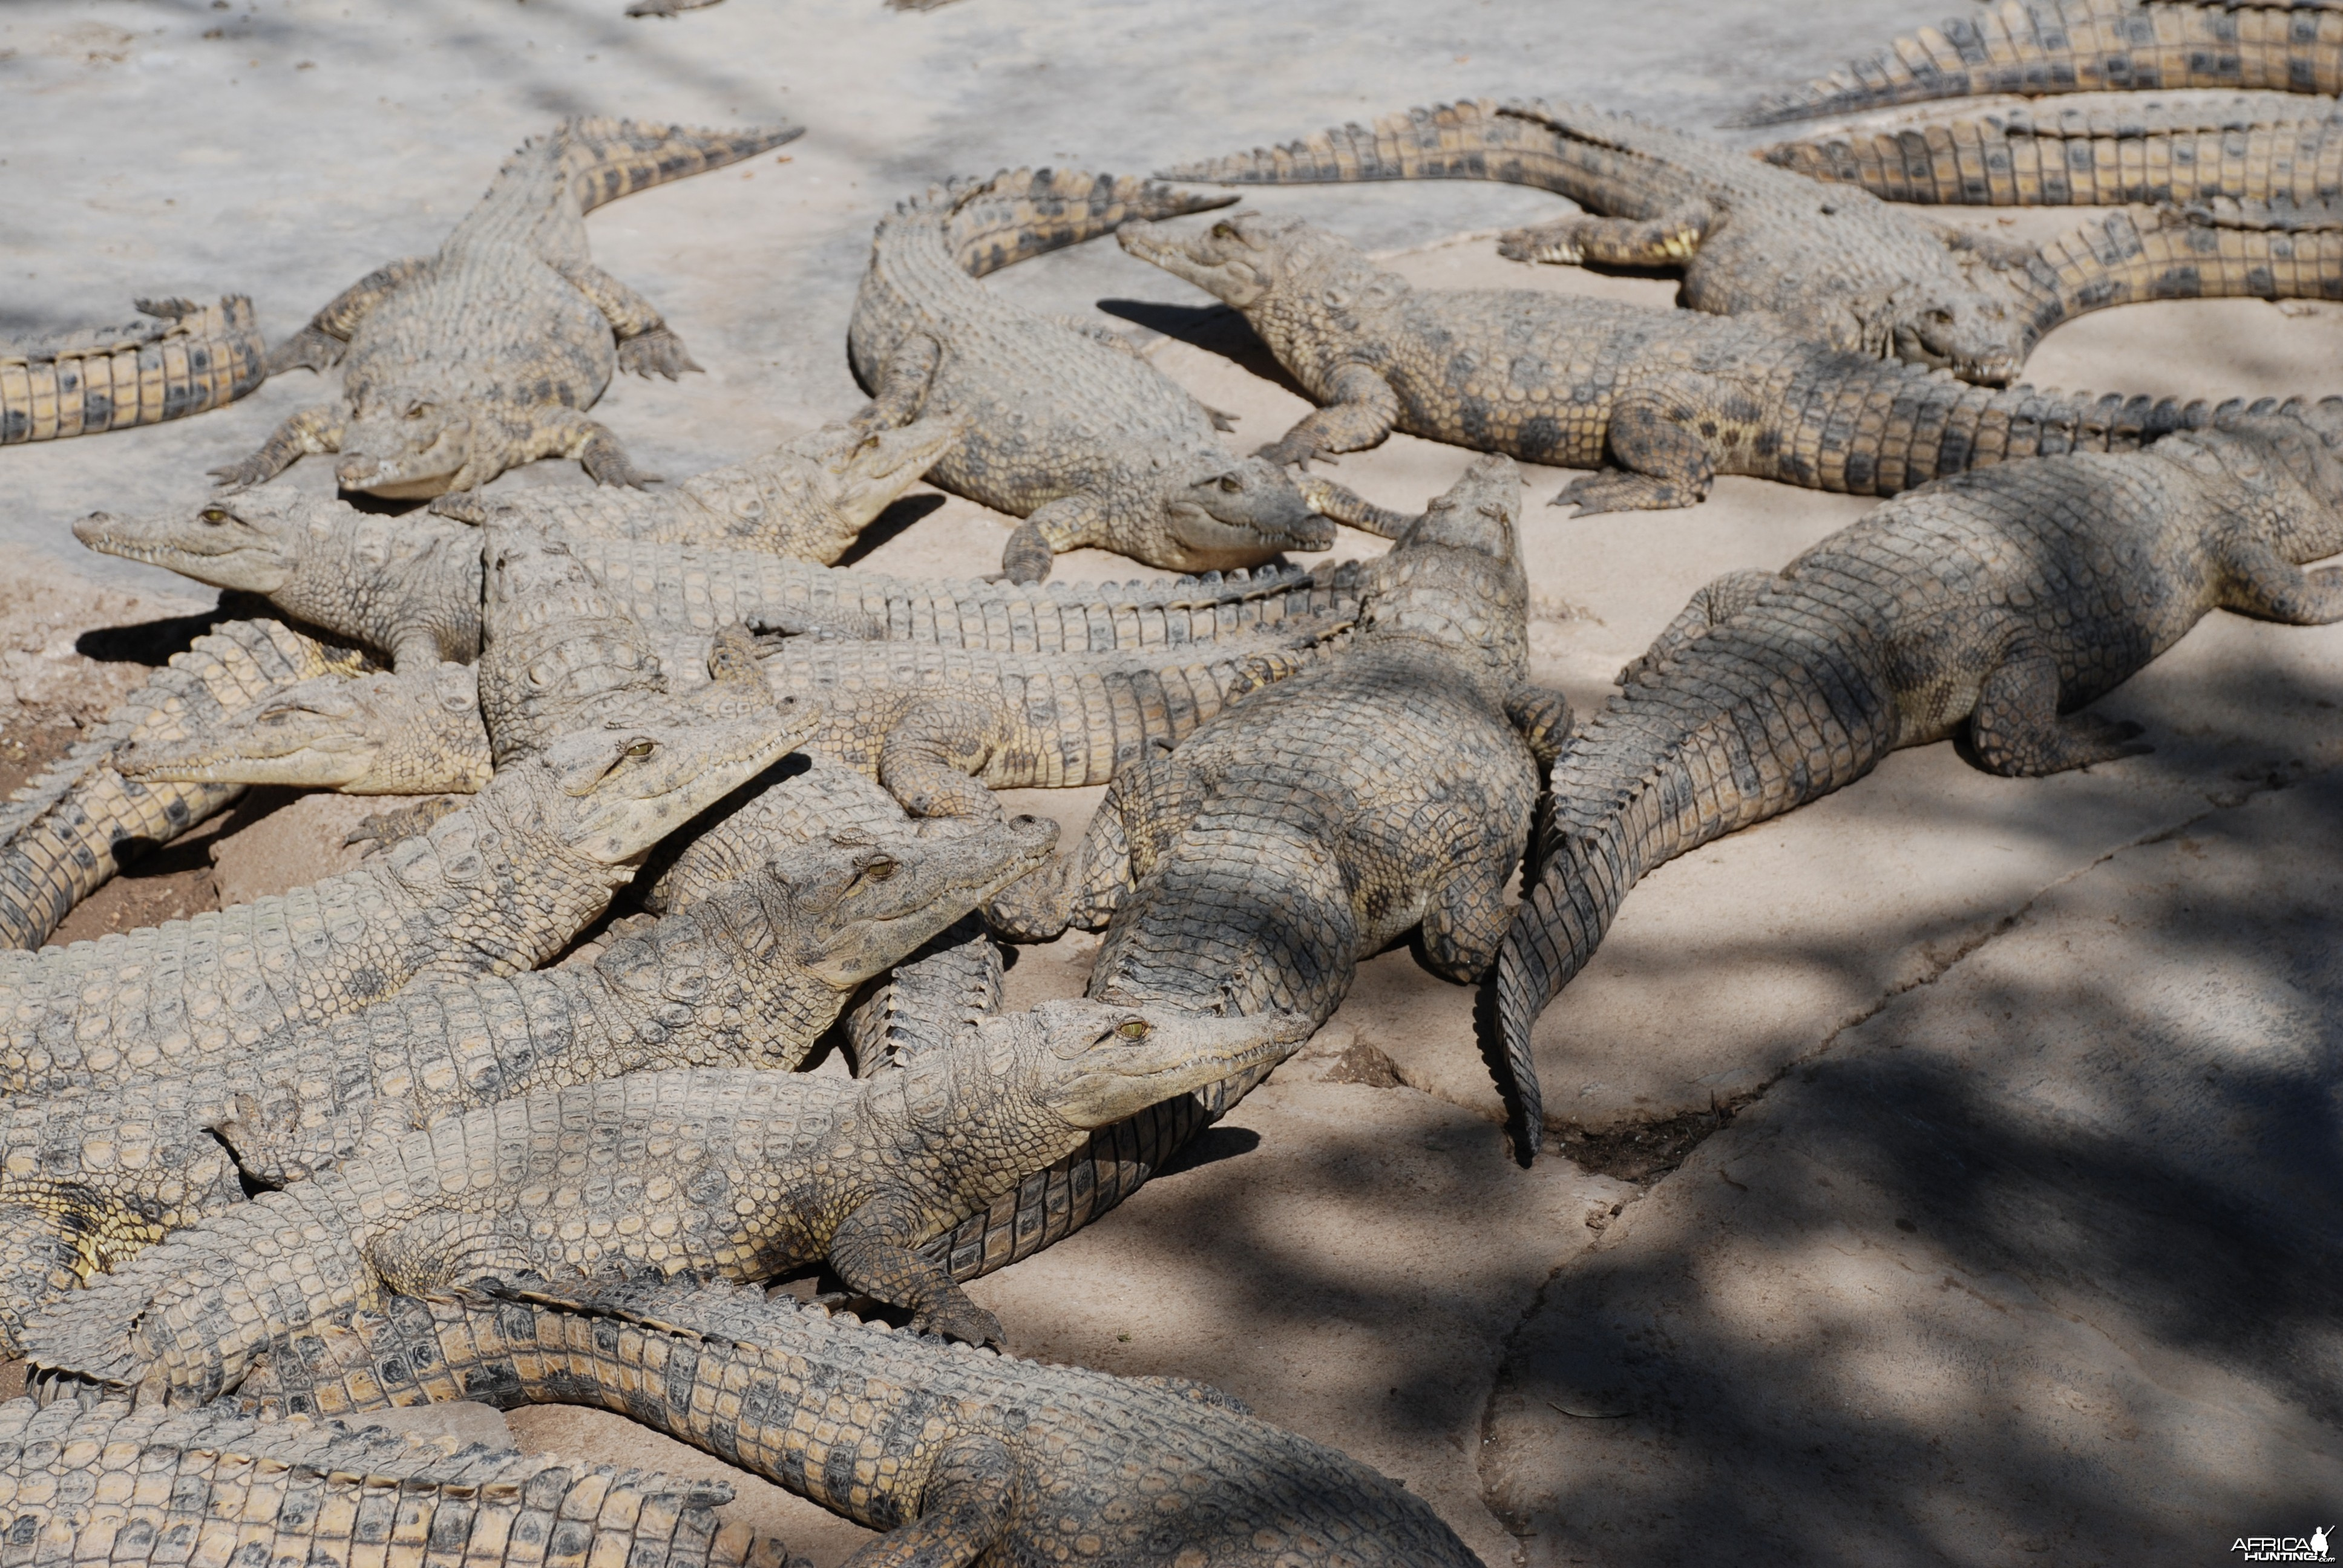 Crocs at Croc farm in Namibia